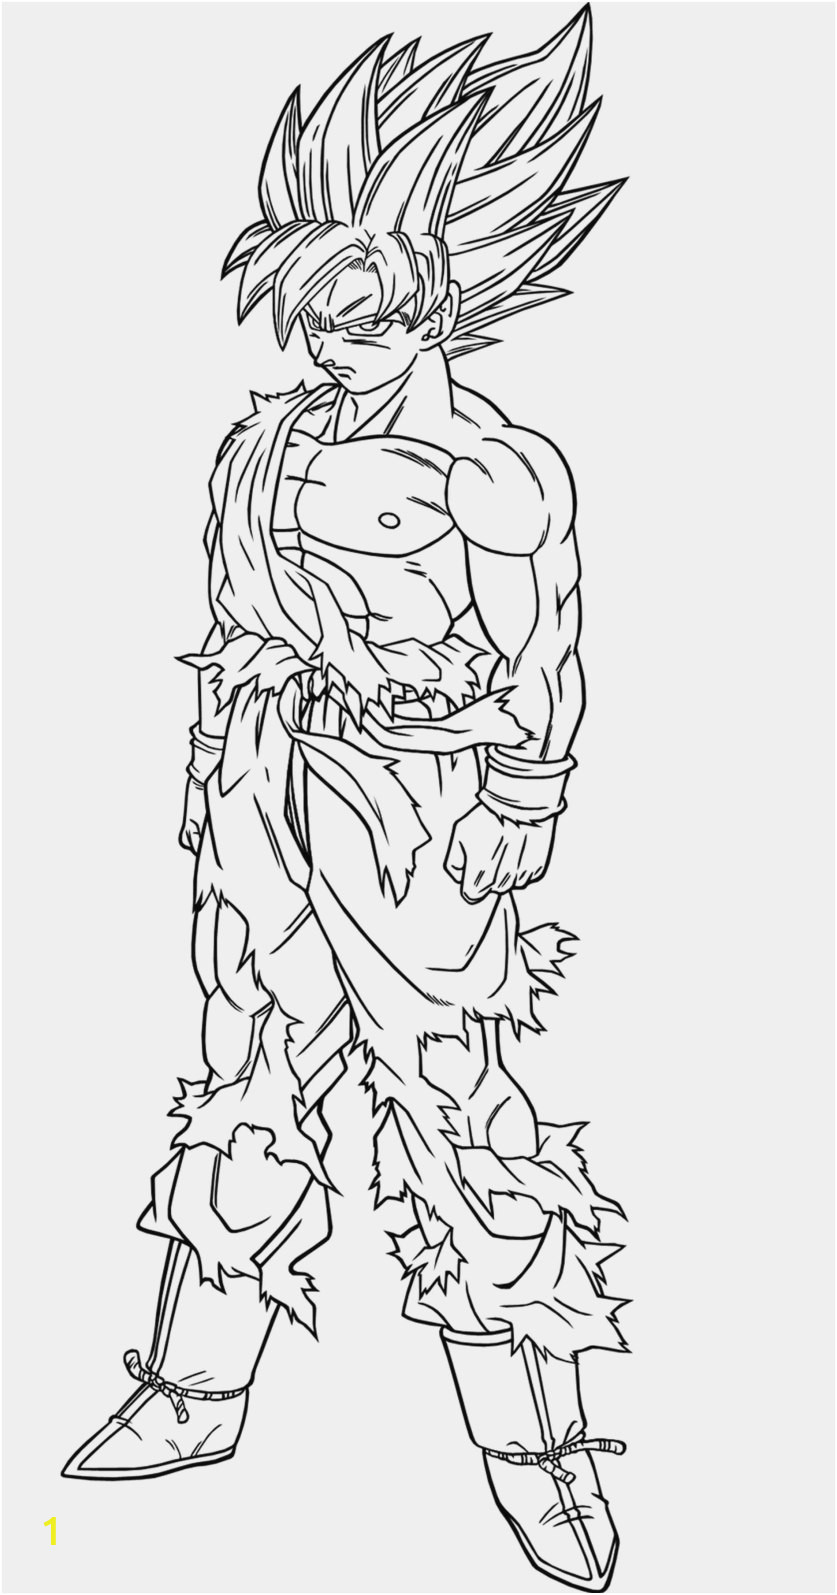 a to z coloring pages stock dragon ball z coloring pages goku super saiyan 3 gotenks new at of a to z coloring pages